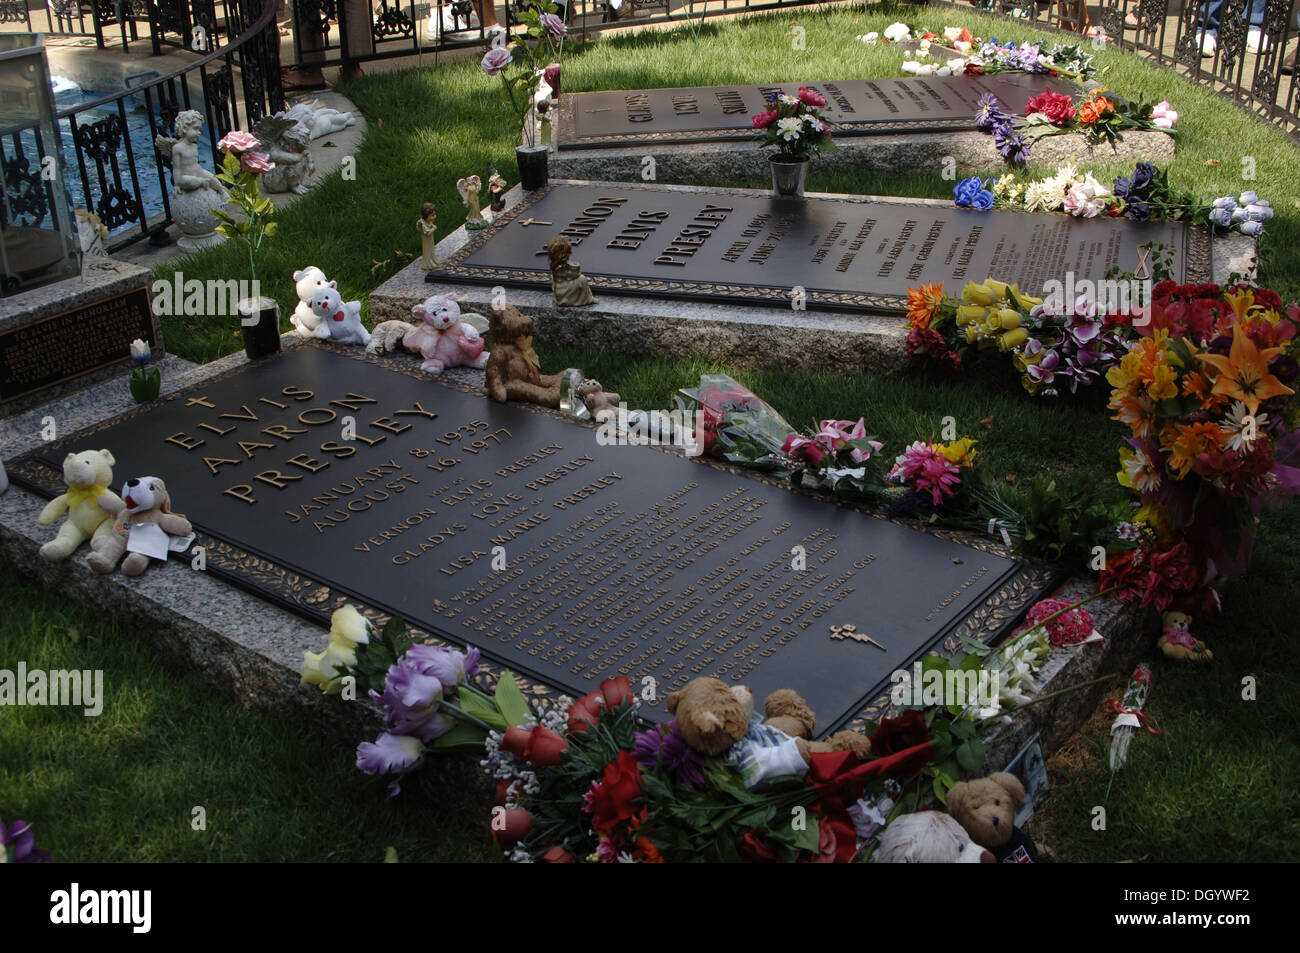 Tennessee. Memphis. Graceland Mansion to Elvis Presley (1935-1977). Meditation graden. Grave of 'The King' and his family. USA. - Stock Image